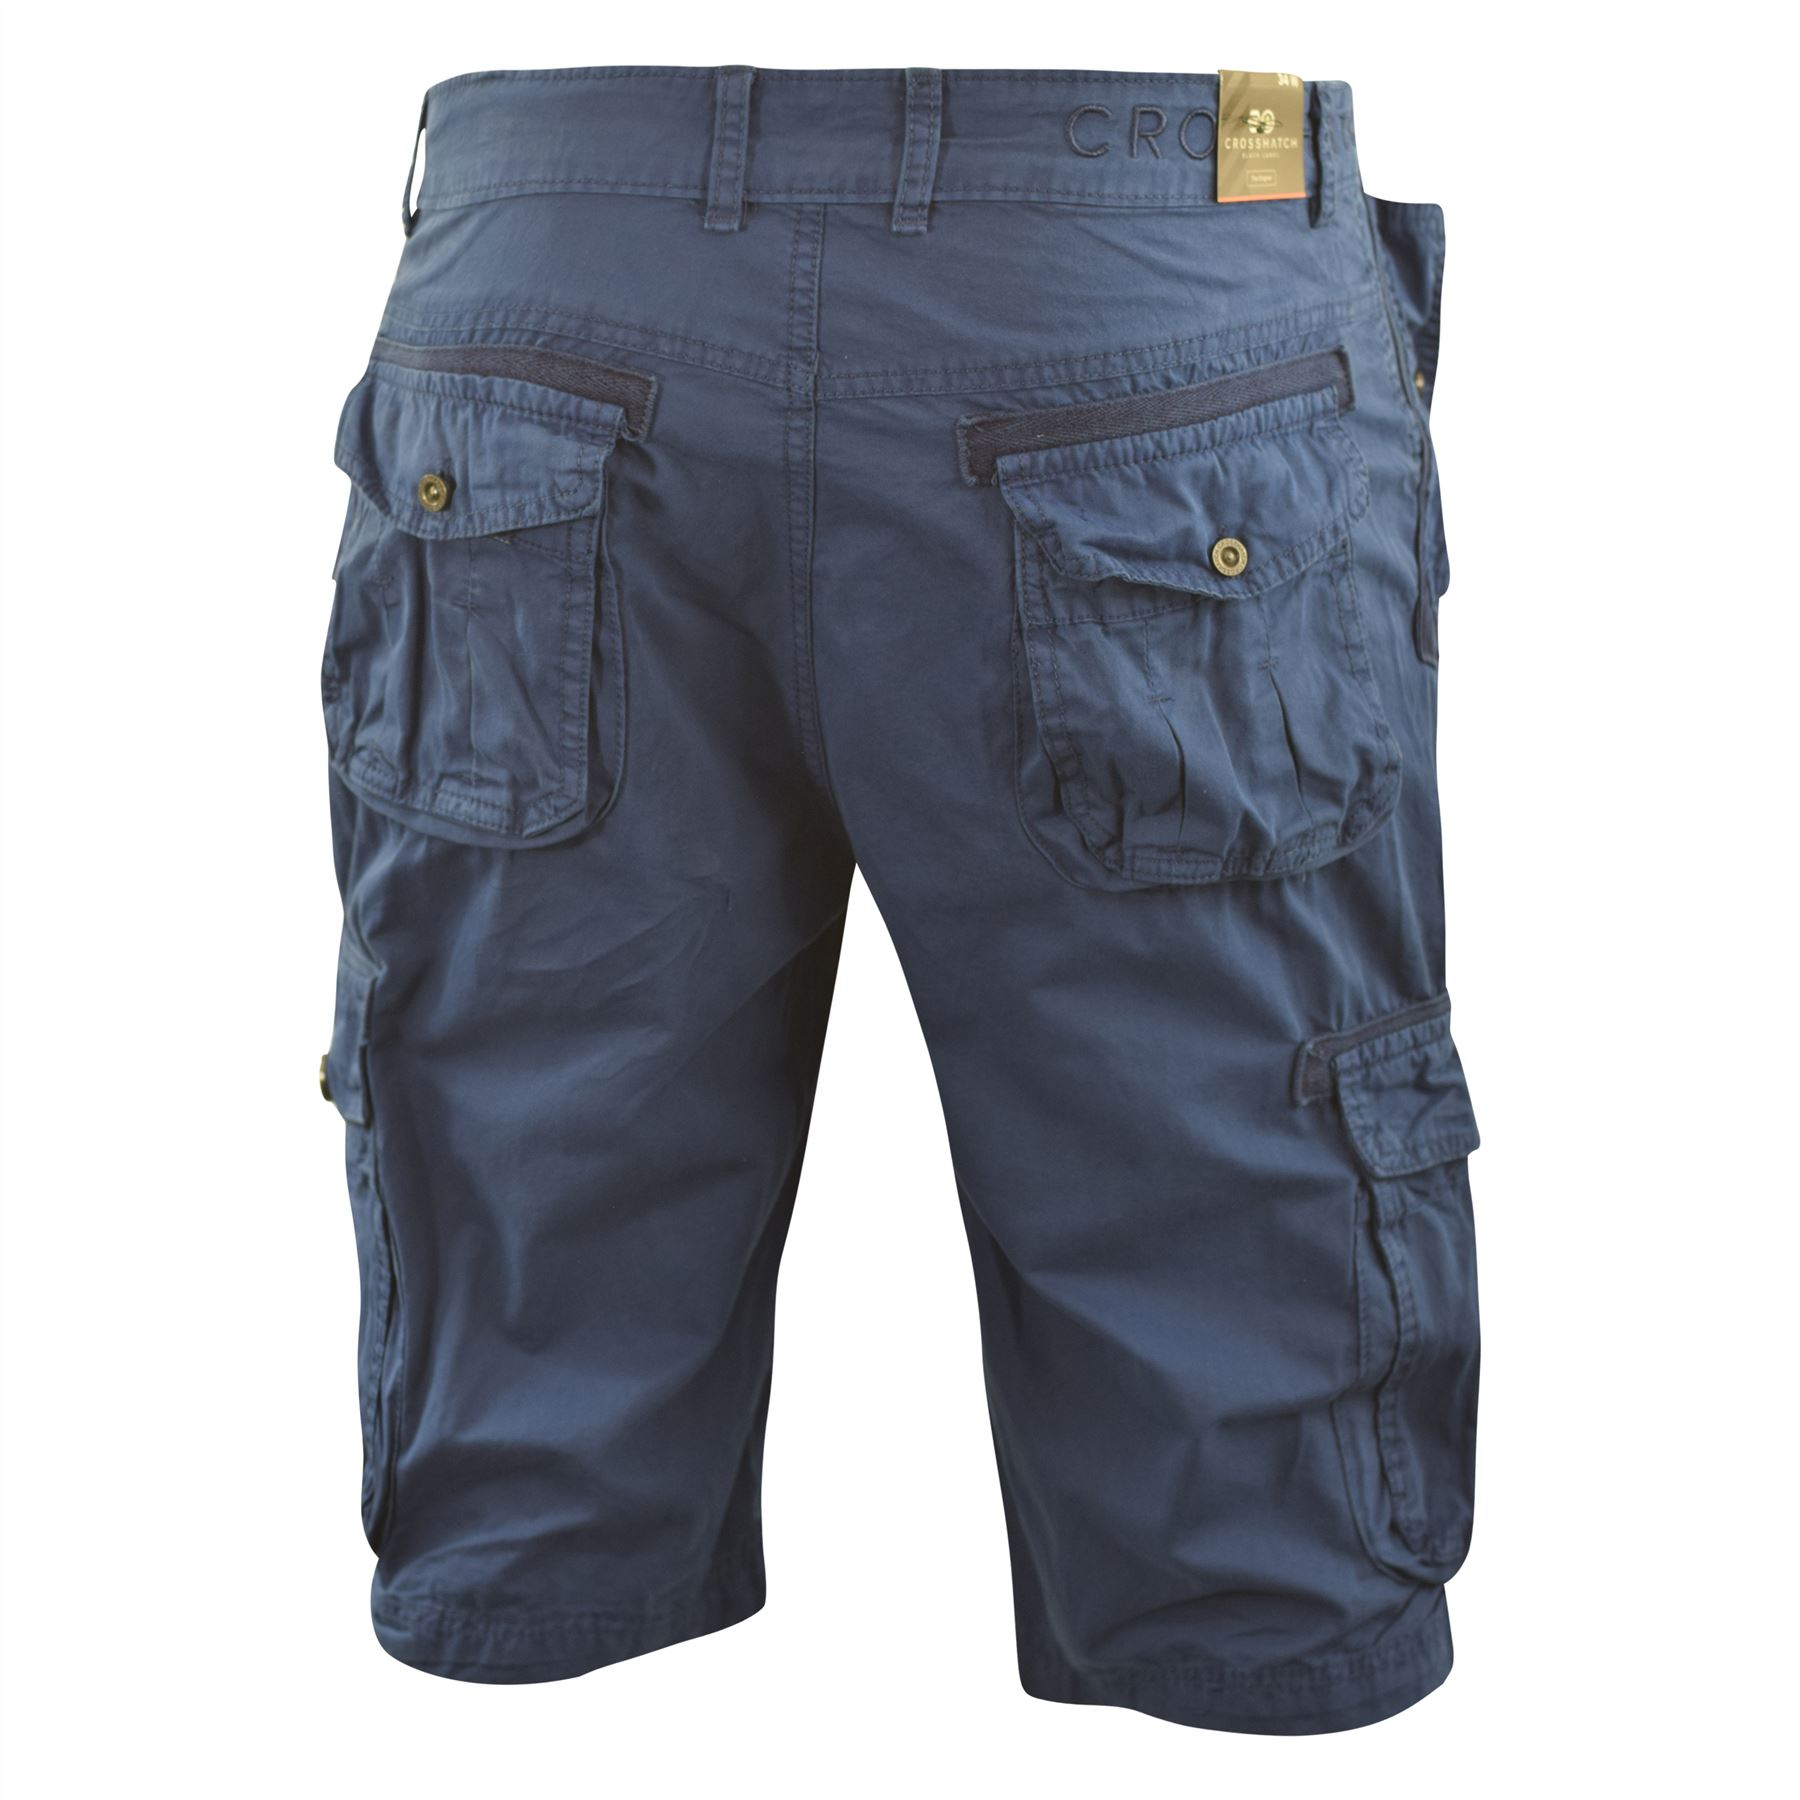 Mens Crosshatch Chinos Cargo Shorts Jeans Combat 3//4 Knee Length Mayfield